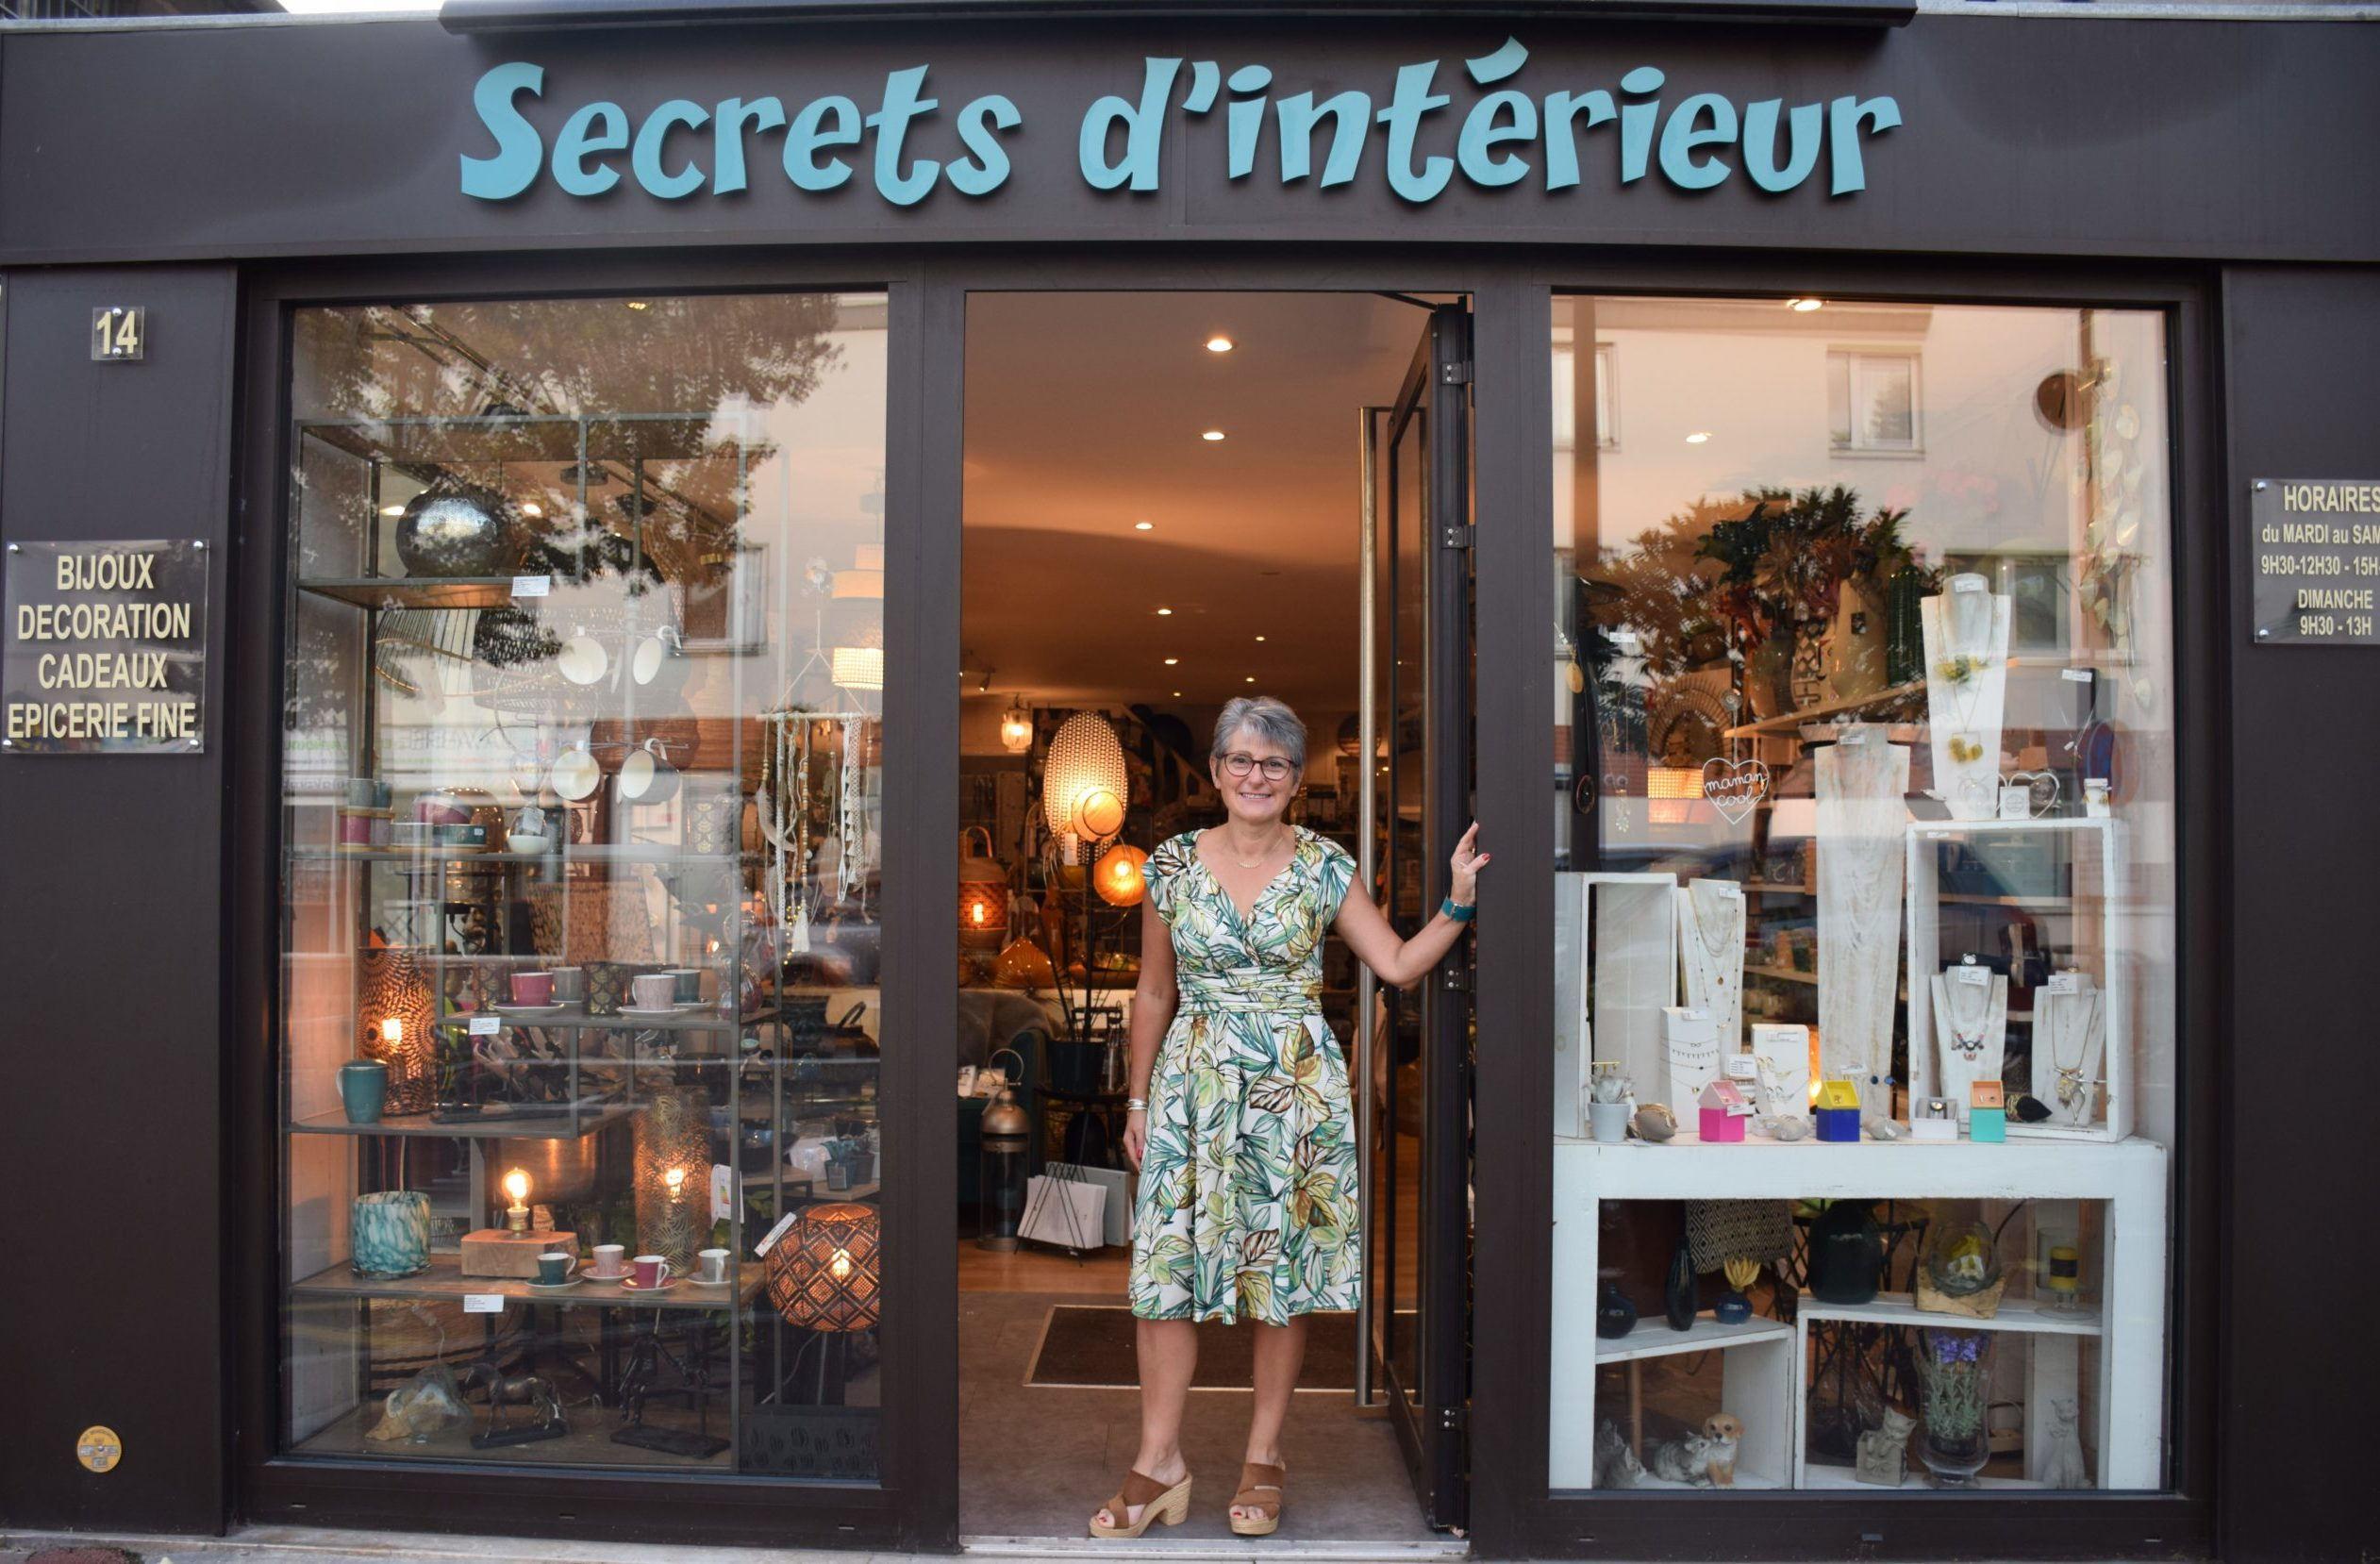 Secrets d'interieur